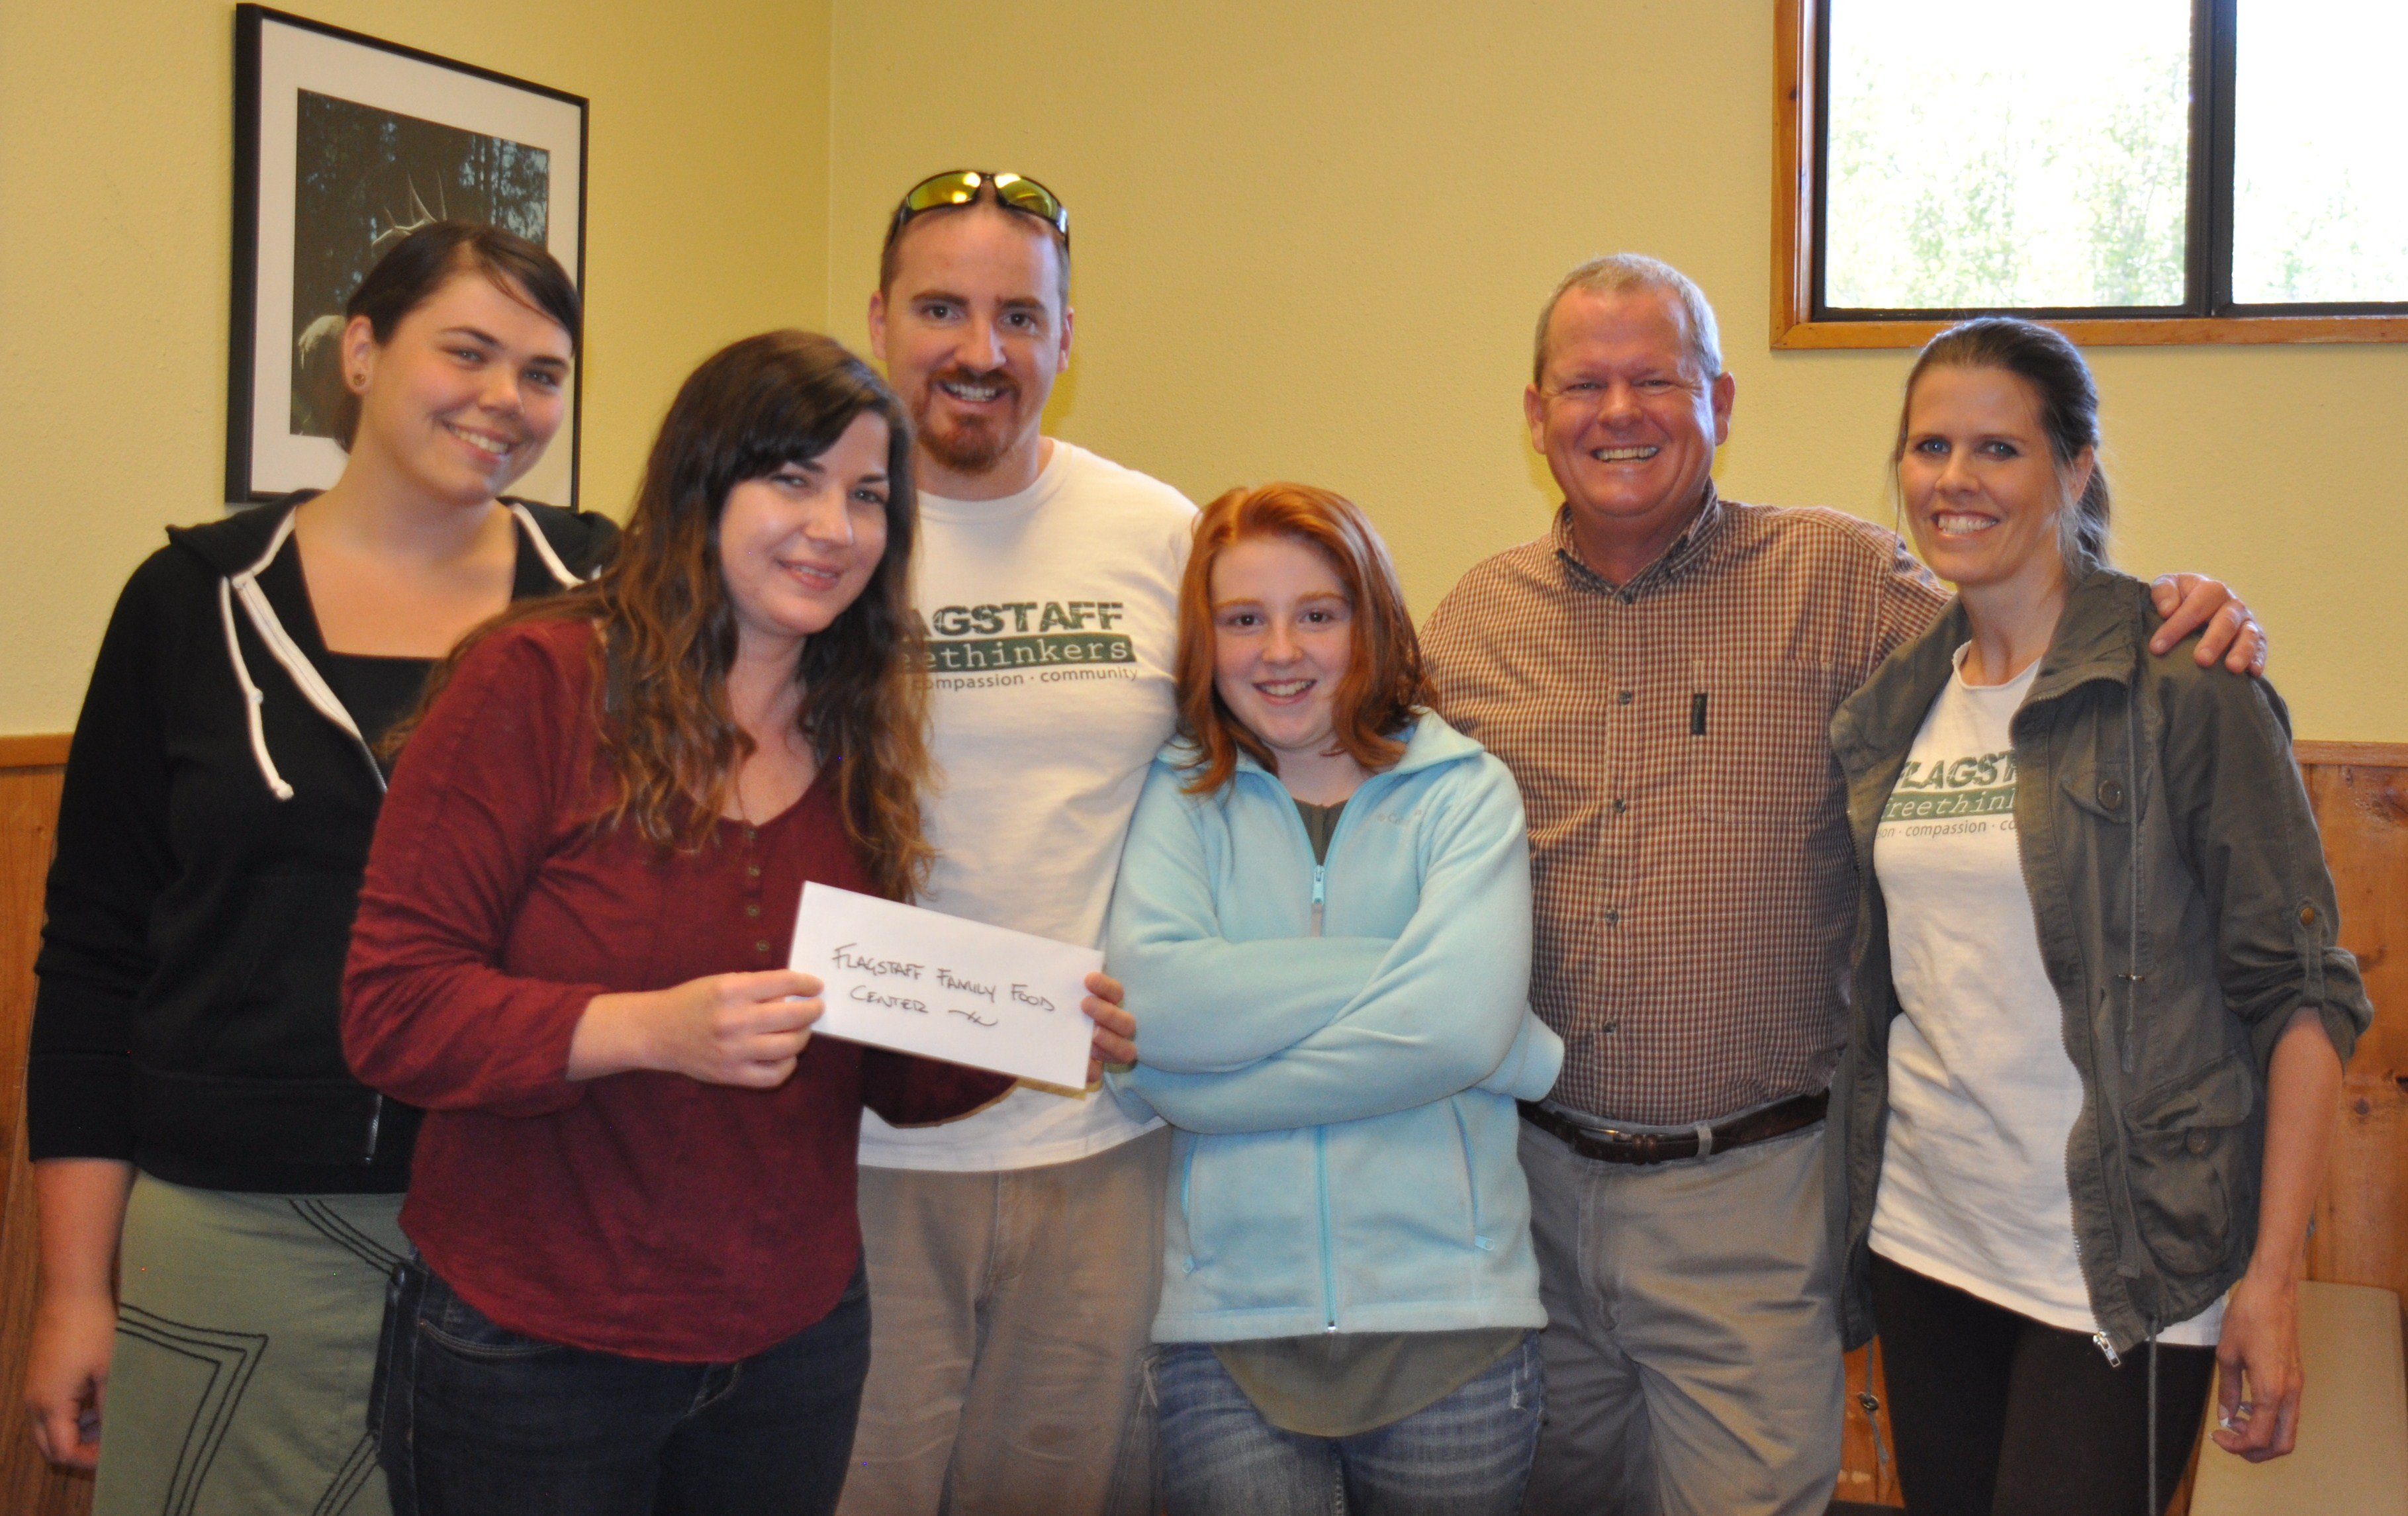 Members of the Flagstaff Freethinkers, including Brian Wallace, present money they raised for the Flagstaff Family Food Center last year.